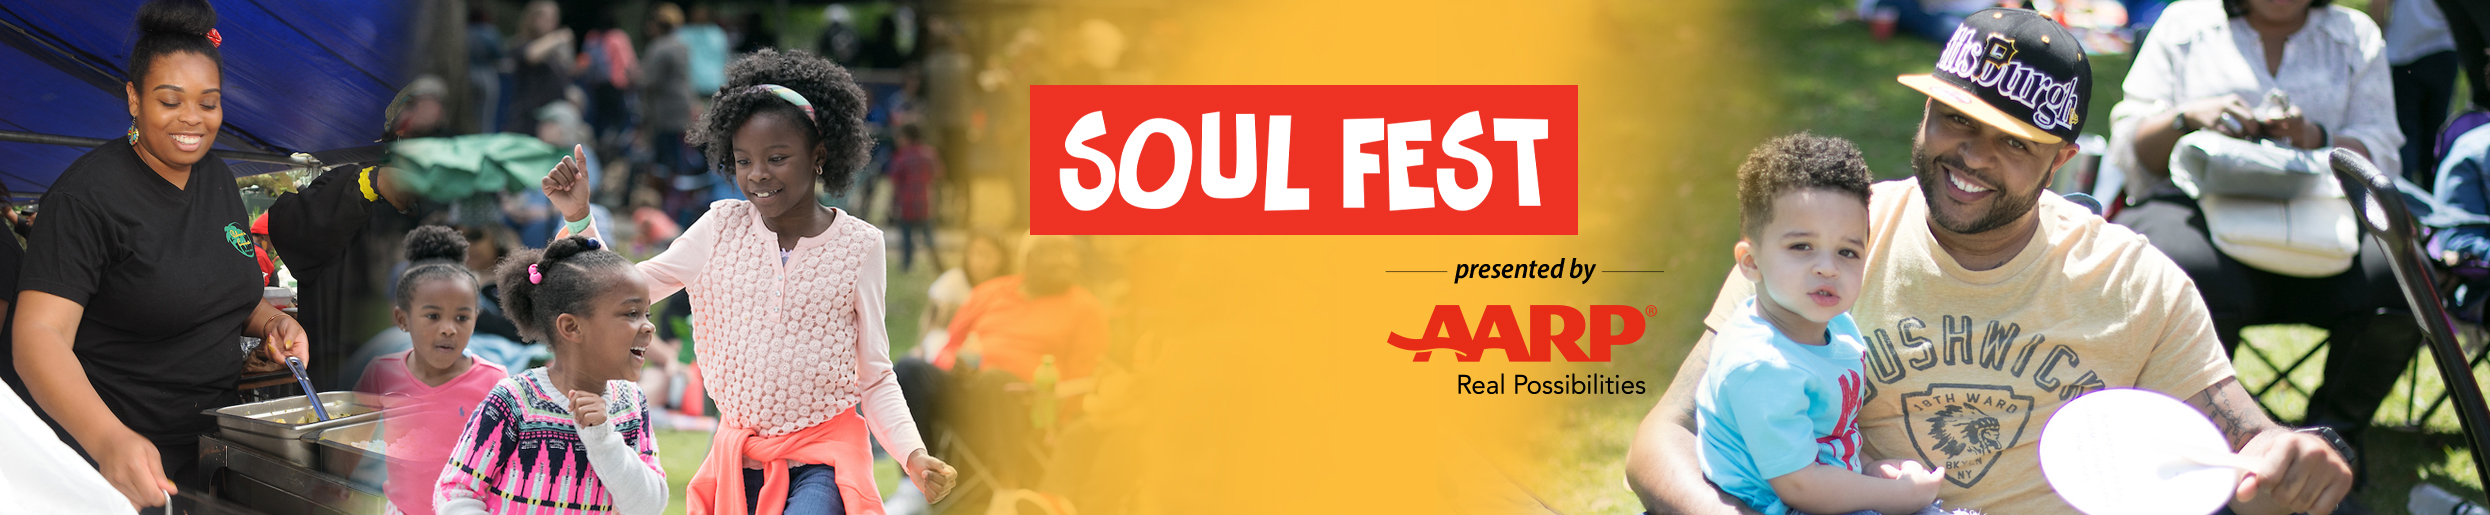 soulfest-2020-2490